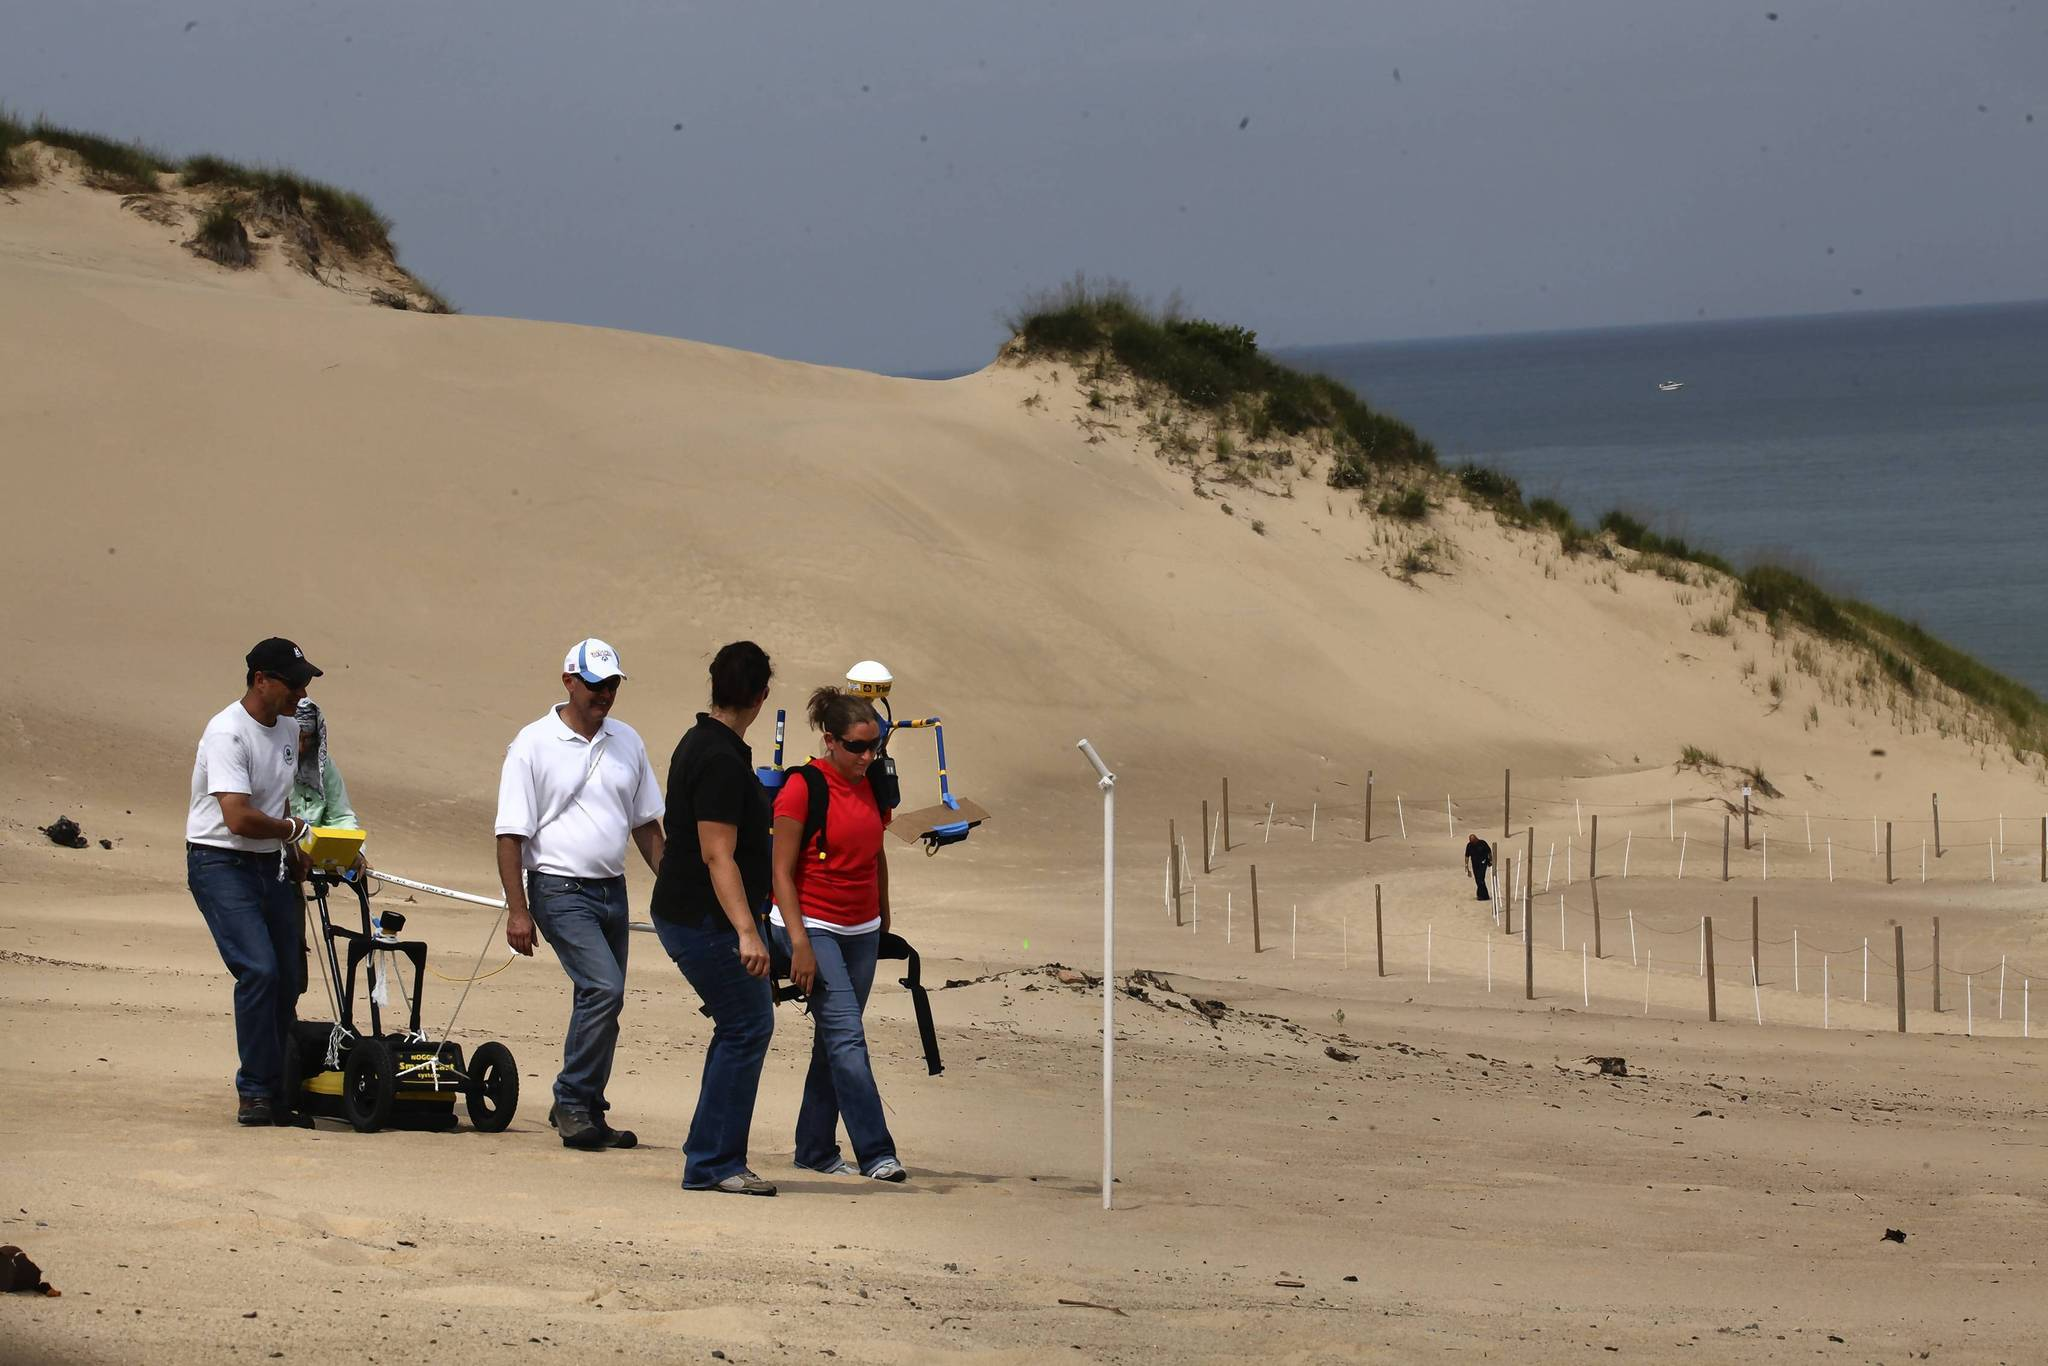 Using a Ground Penetrating Radar machine and a special GPS, EPA investigators scan the sand dunes where the boy was swallowed at Mt. Baldy in the Indiana Lakeshore National Park.